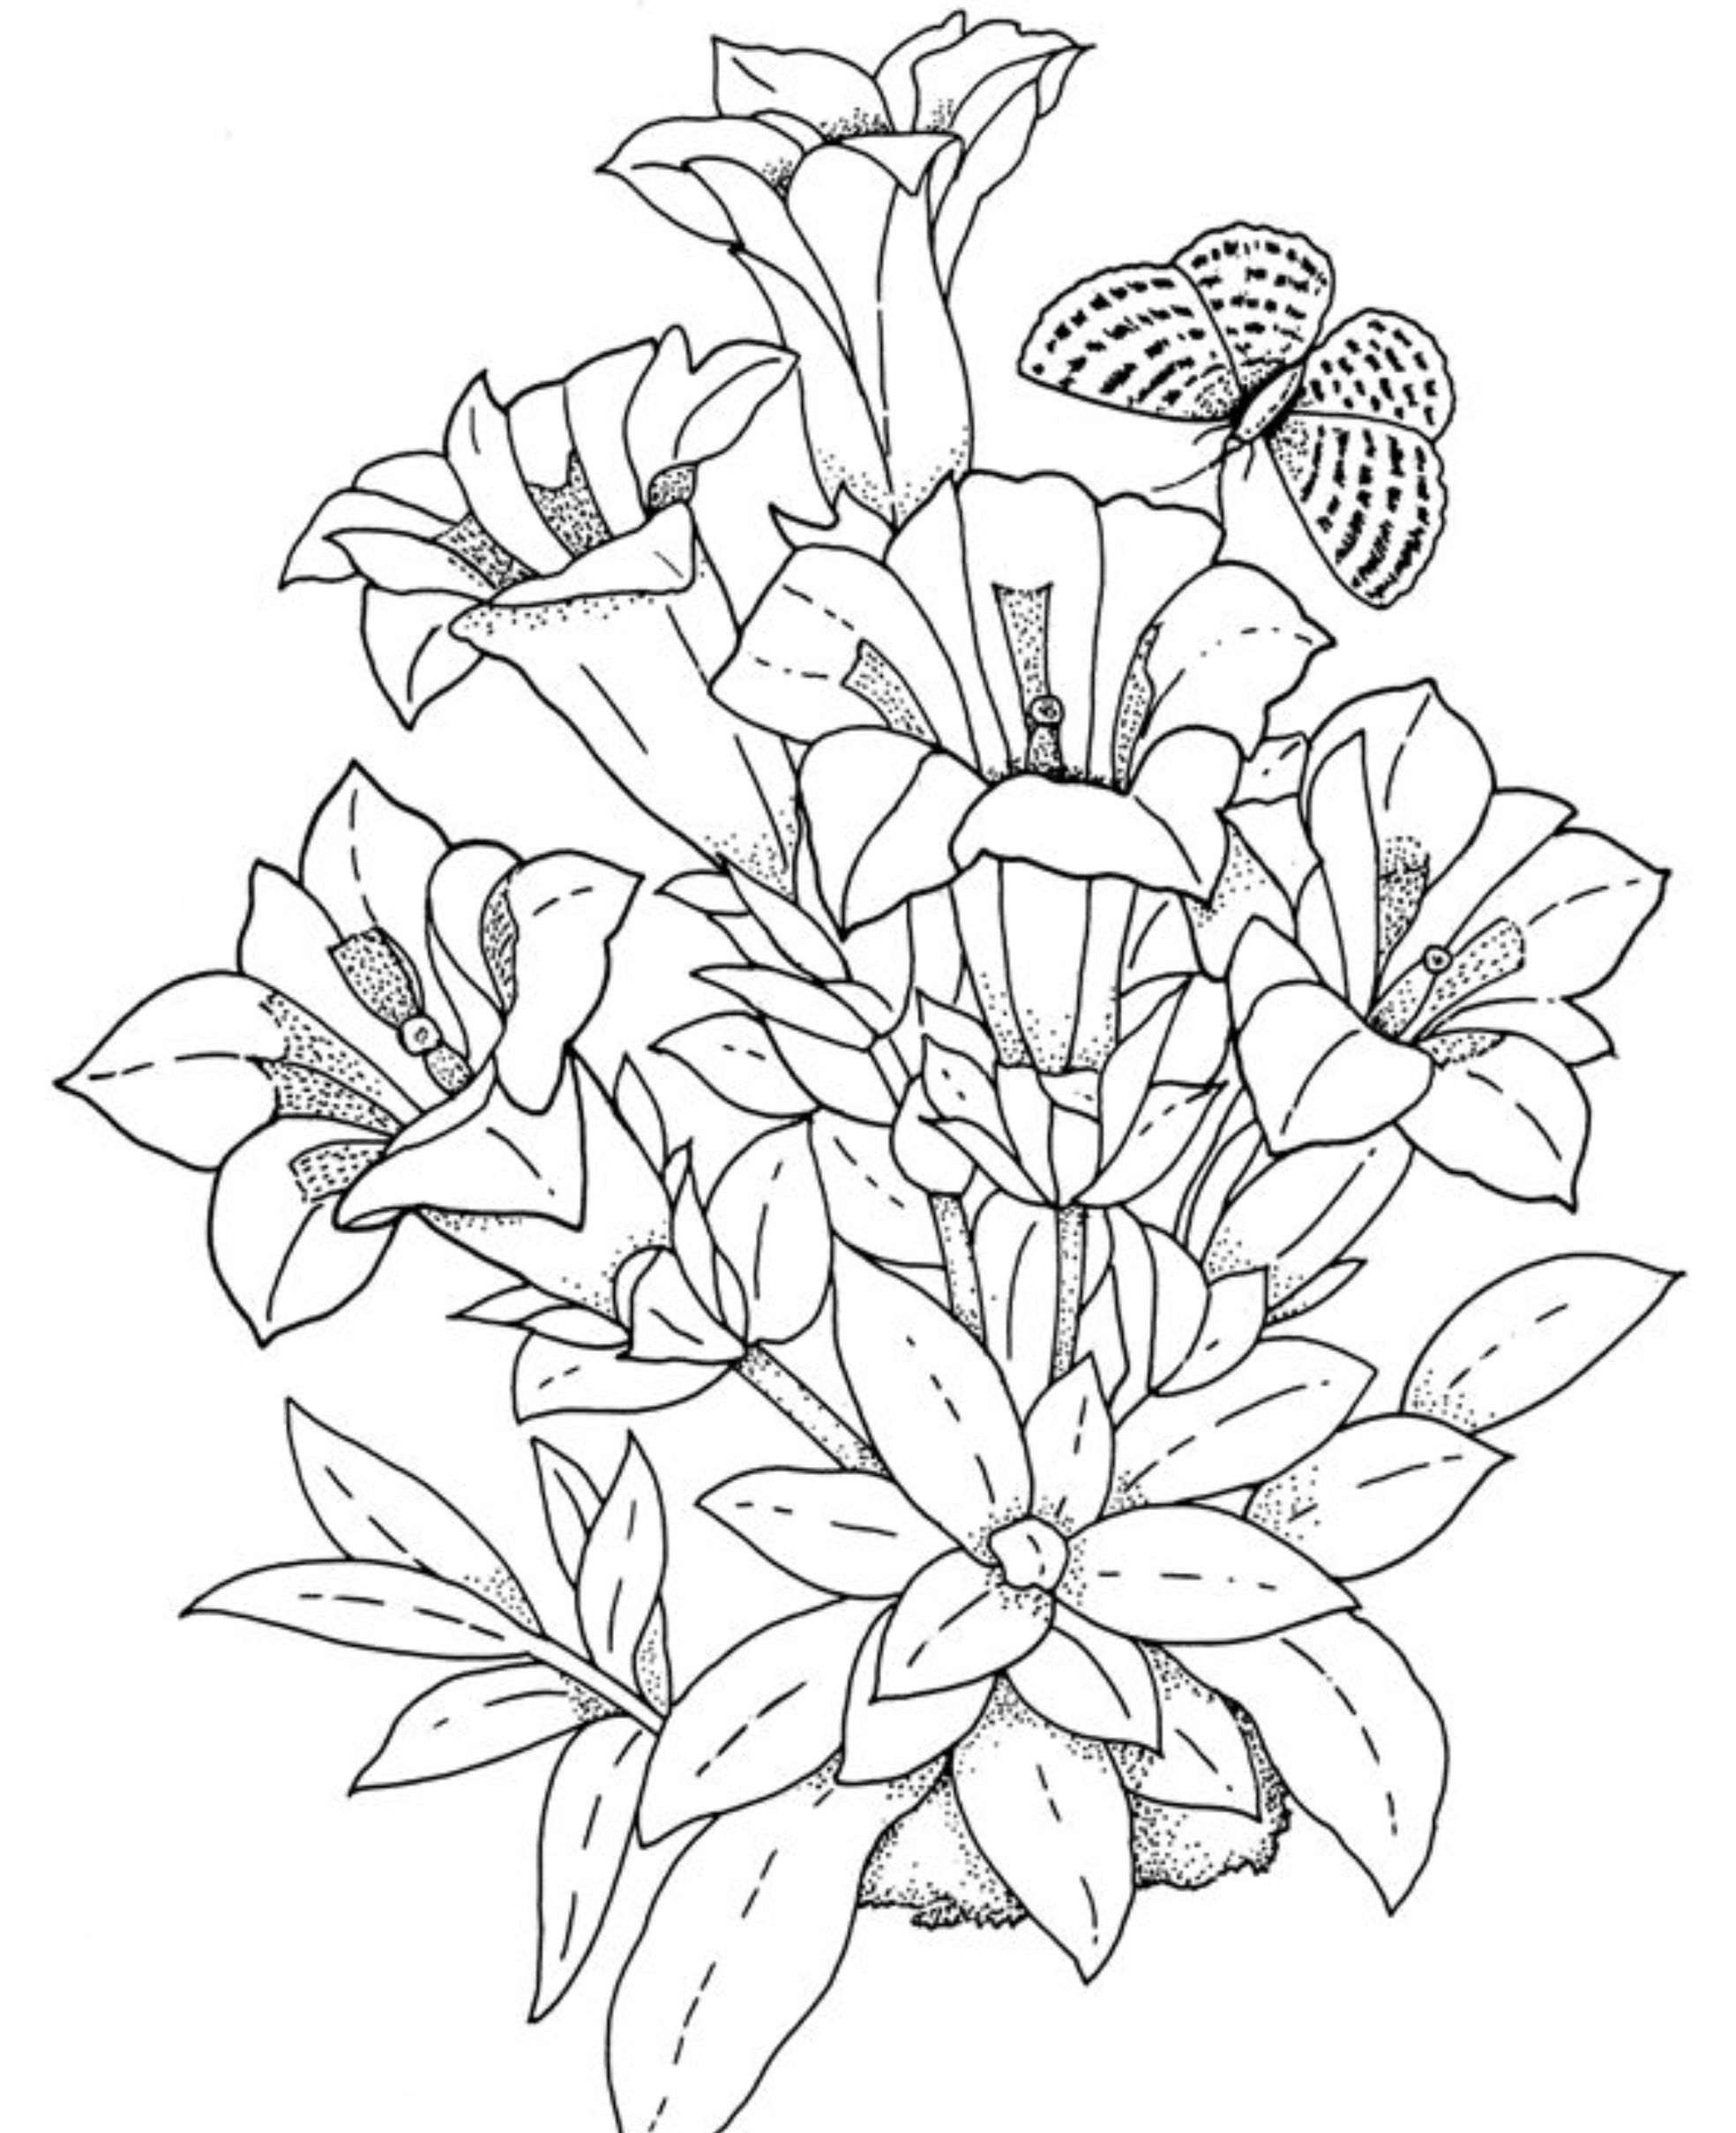 coloring pages flowers free printable flower coloring pages for kids cool2bkids pages coloring flowers